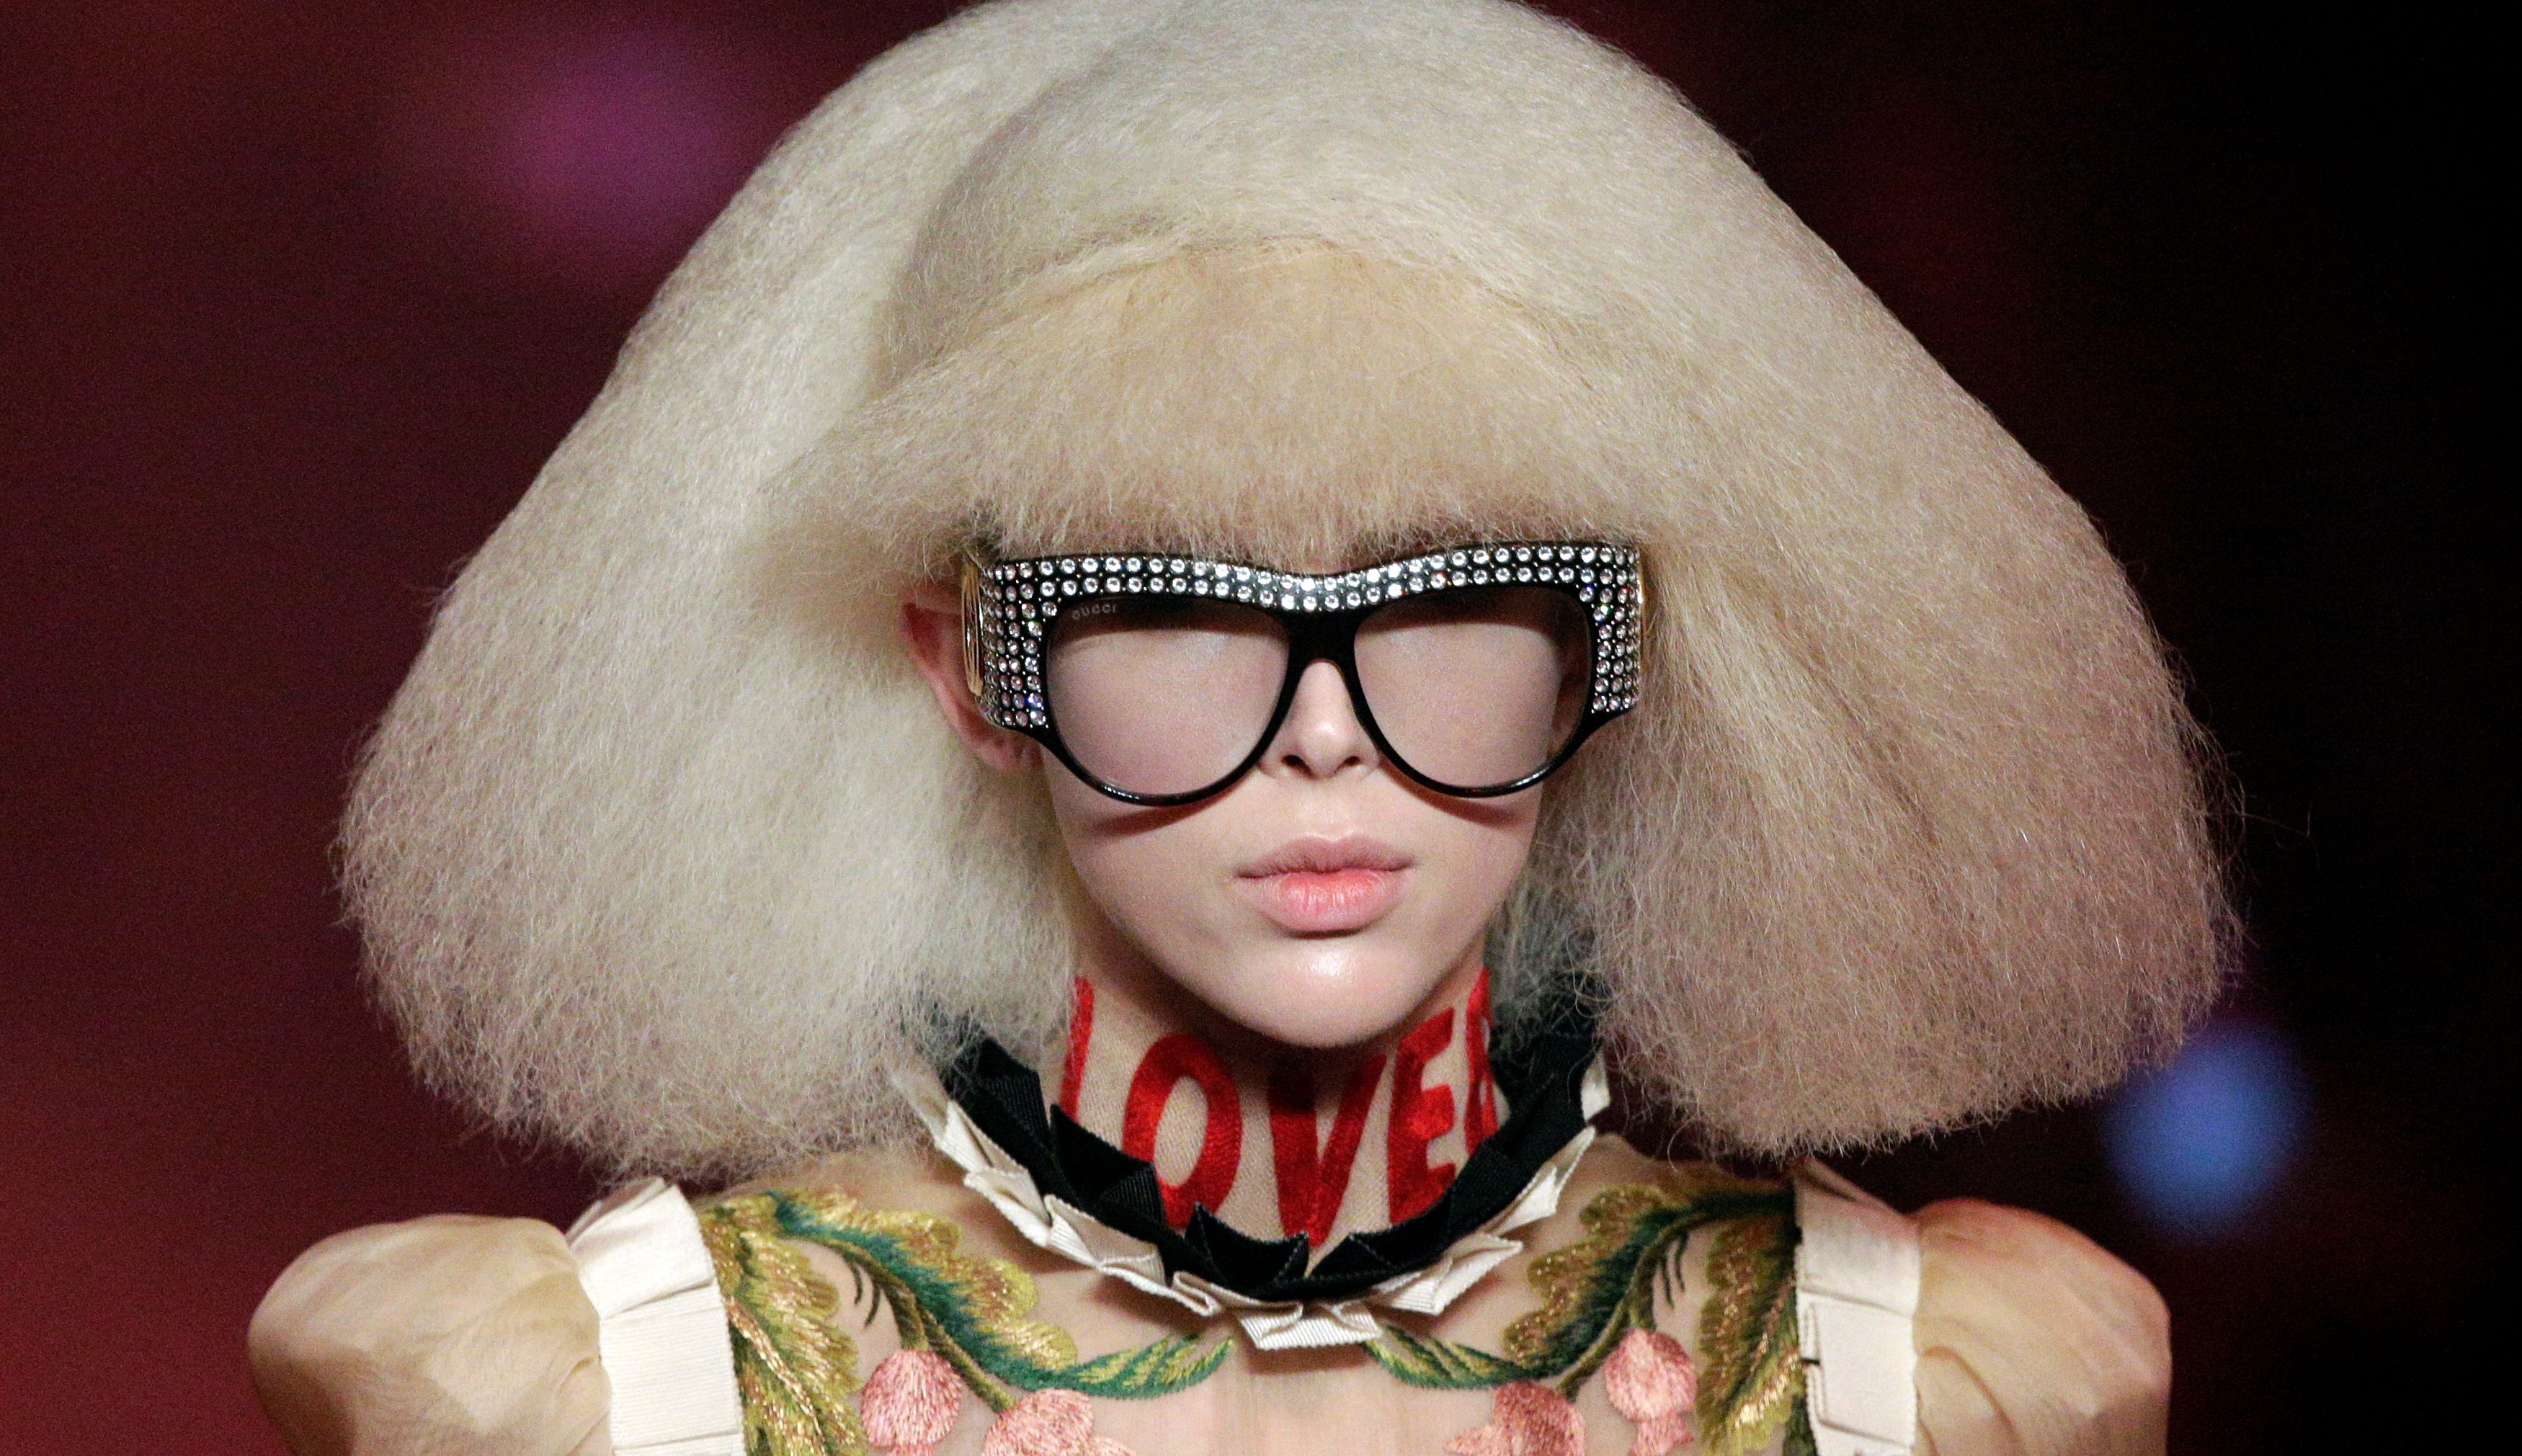 ec1fdcb44b1 A model presents a creation at the Gucci fashion show during Milan Fashion  Week Spring